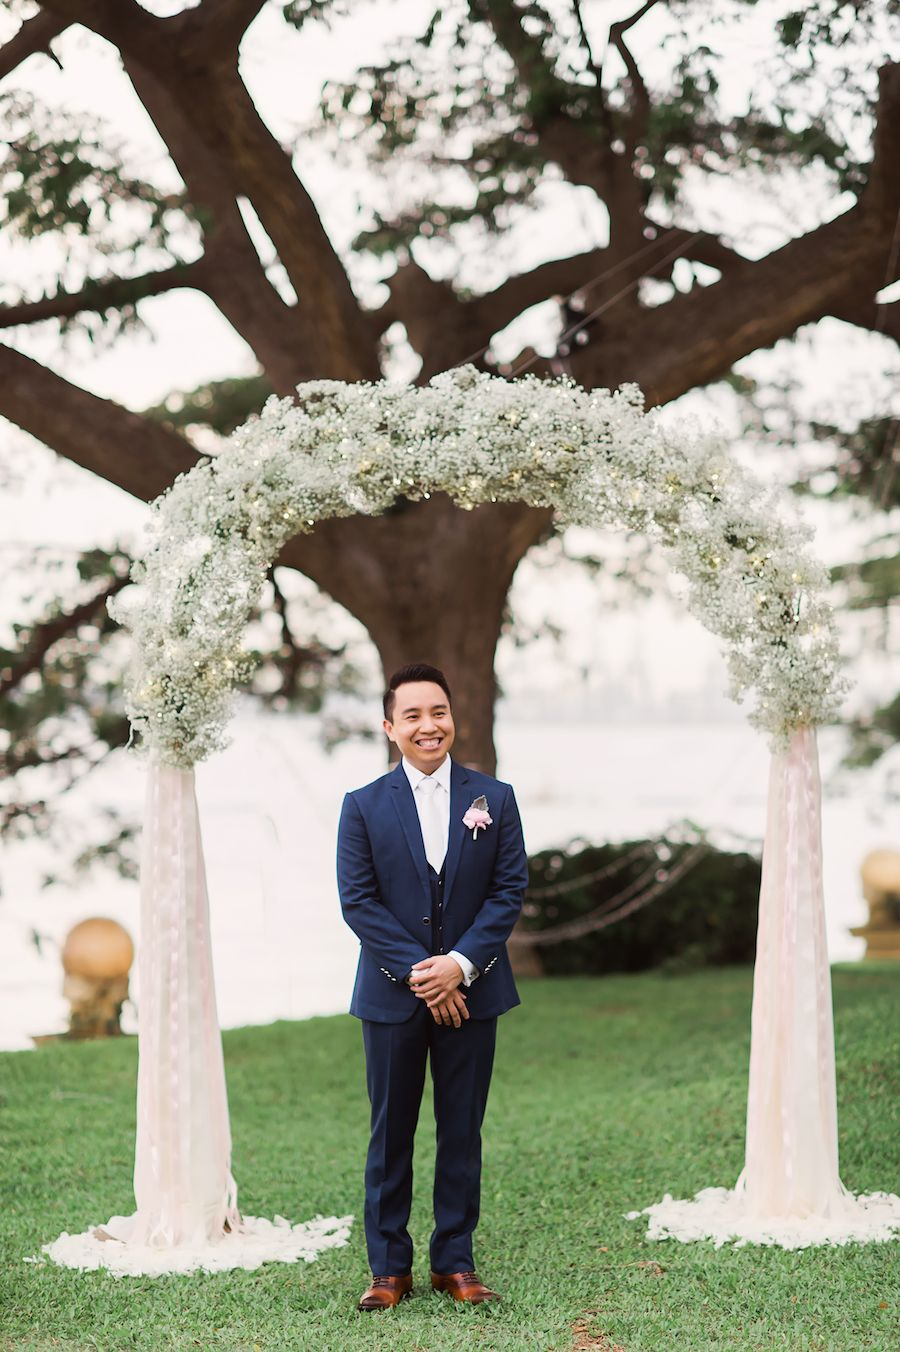 Eddie + Stephanie's Wedding with a Live Butterfly Release